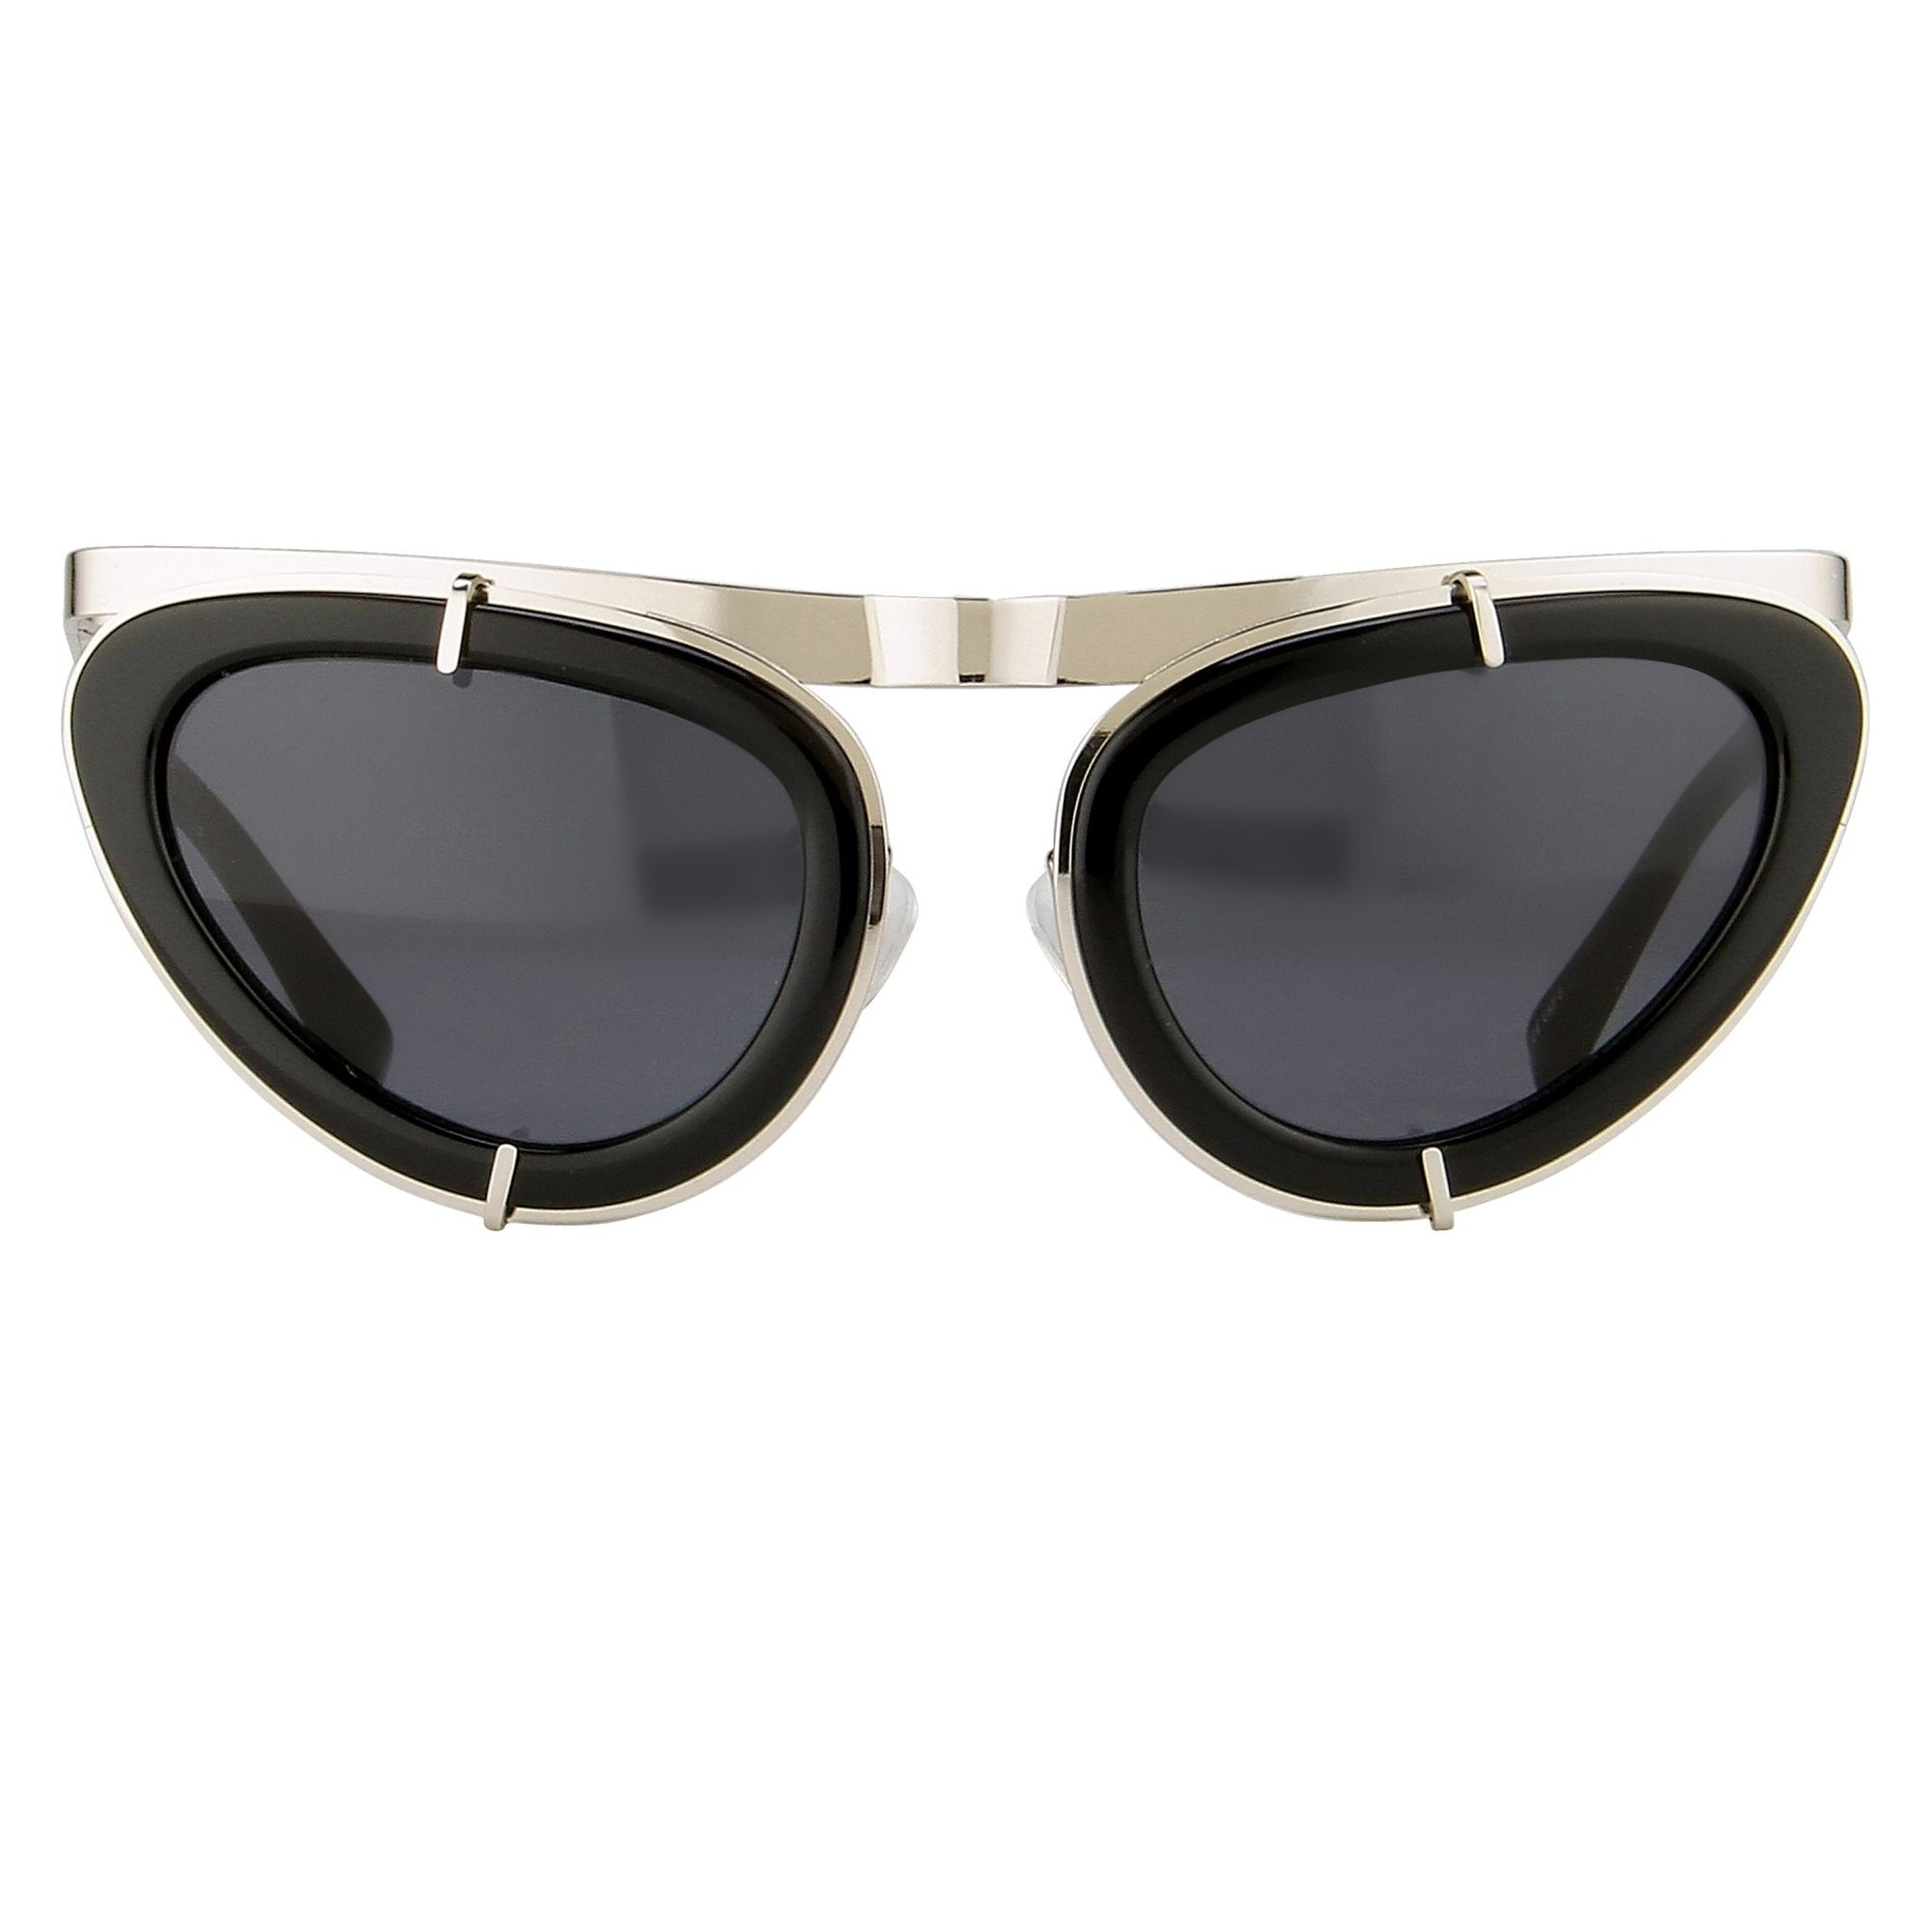 Erdem Women Sunglasses Cat Eye Black Shiny Silver with Grey Lenses Category 3 EDM3C6SUN - Watches & Crystals